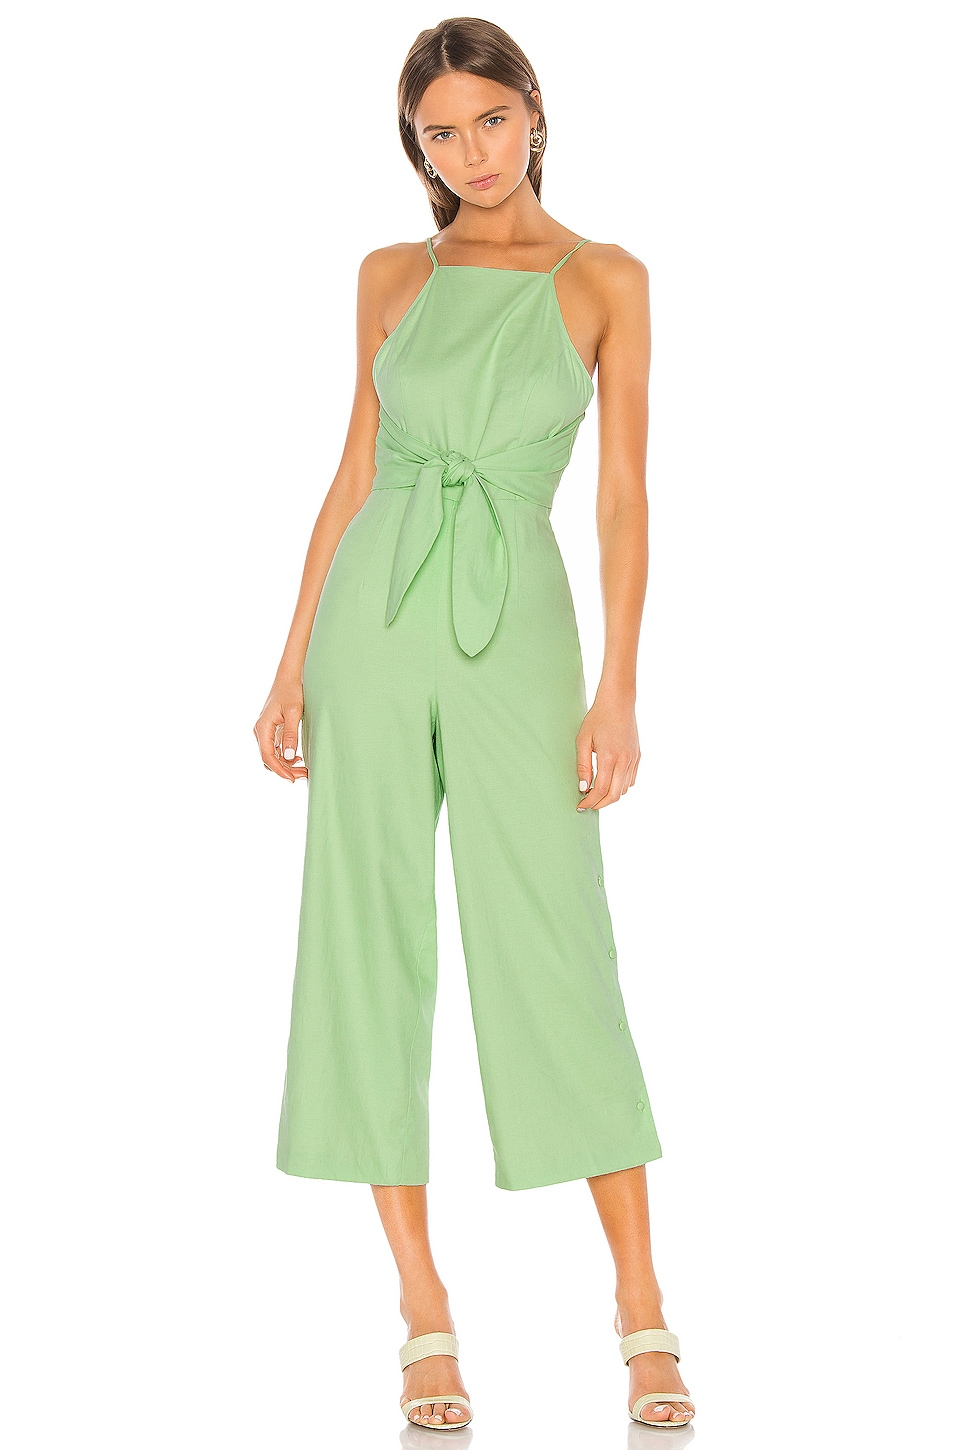 Camila Coelho Micah Jumpsuit in Soft Mint